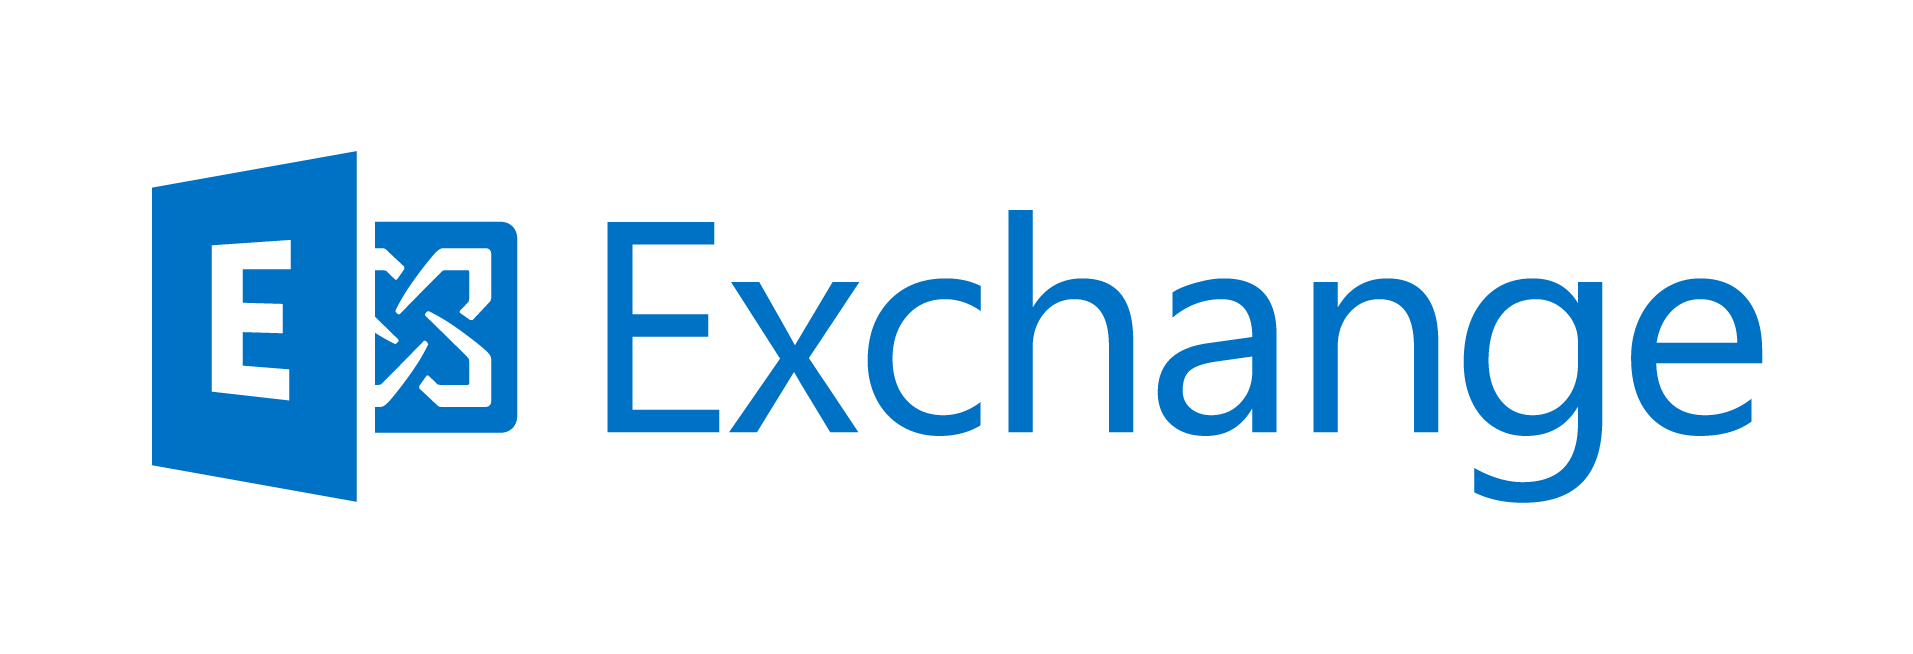 Microsoft Exchange Server 2019 Cumulative Update 3